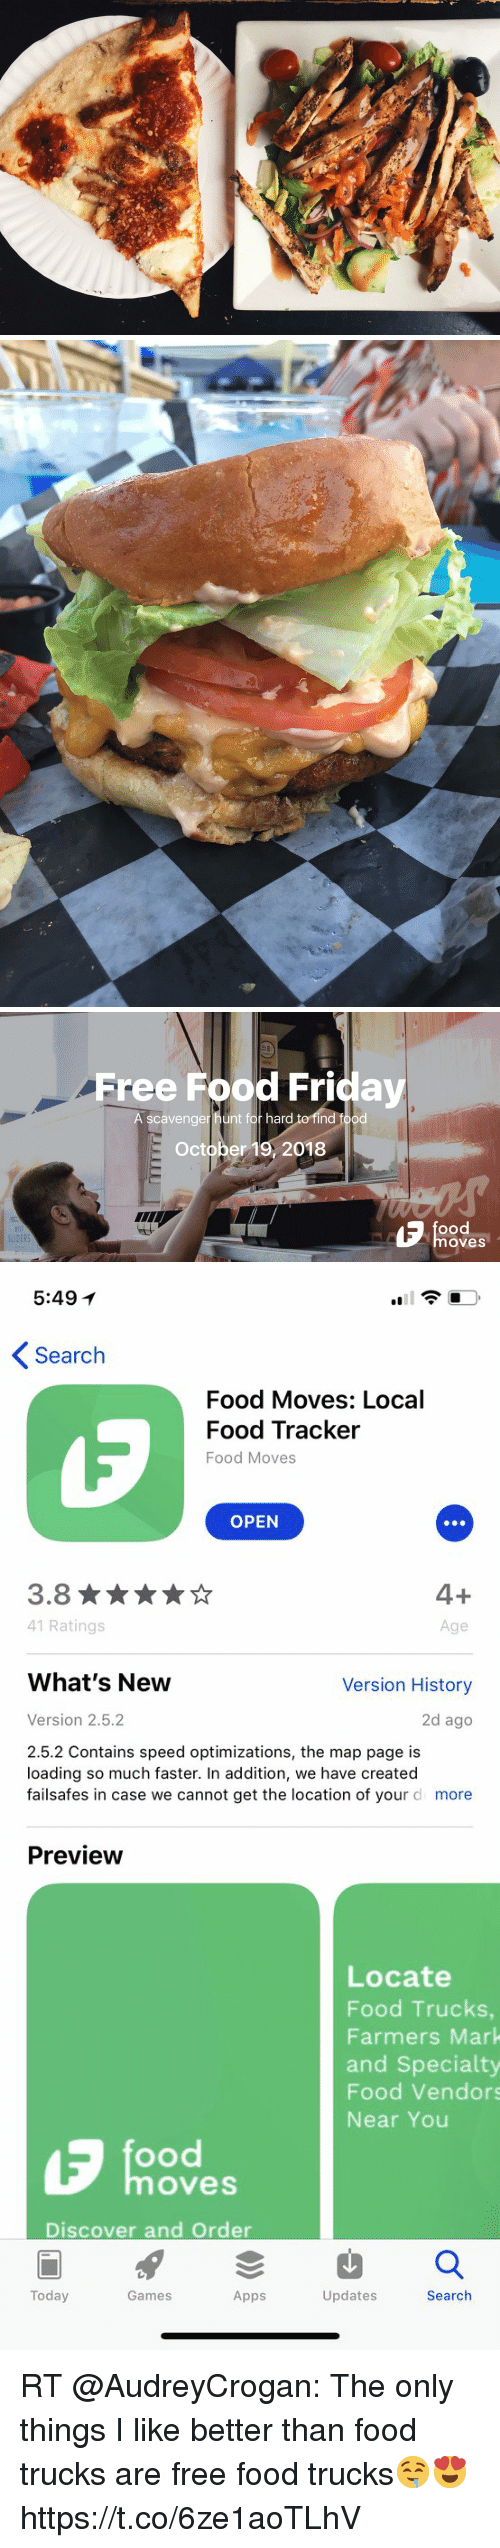 Food, Friday, and Memes: Free Food Friday  scavenger hunt for hard to find food  October 19, 2018  ood  BEST  SLIDERS  oves   5:49 1  Search  Food Moves: Local  Food Tracker  Food Moves  OPEN  3.8  41 Ratings  Age  What's New  Version History  Version 2.5.2  2d ago  2.5.2 Contains speed optimizations, the map page is  loading so much faster. In addition, we have created  failsafes in case we cannot get the location of your d more  Preview  Locate  Food Trucks  Farmers Mark  and Specialty  Food Vendors  Near You  ood  oves  Discover and Order  Today  Games  Apps  Updates  Search RT @AudreyCrogan: The only things I like better than food trucks are free food trucks🤤😍 https://t.co/6ze1aoTLhV